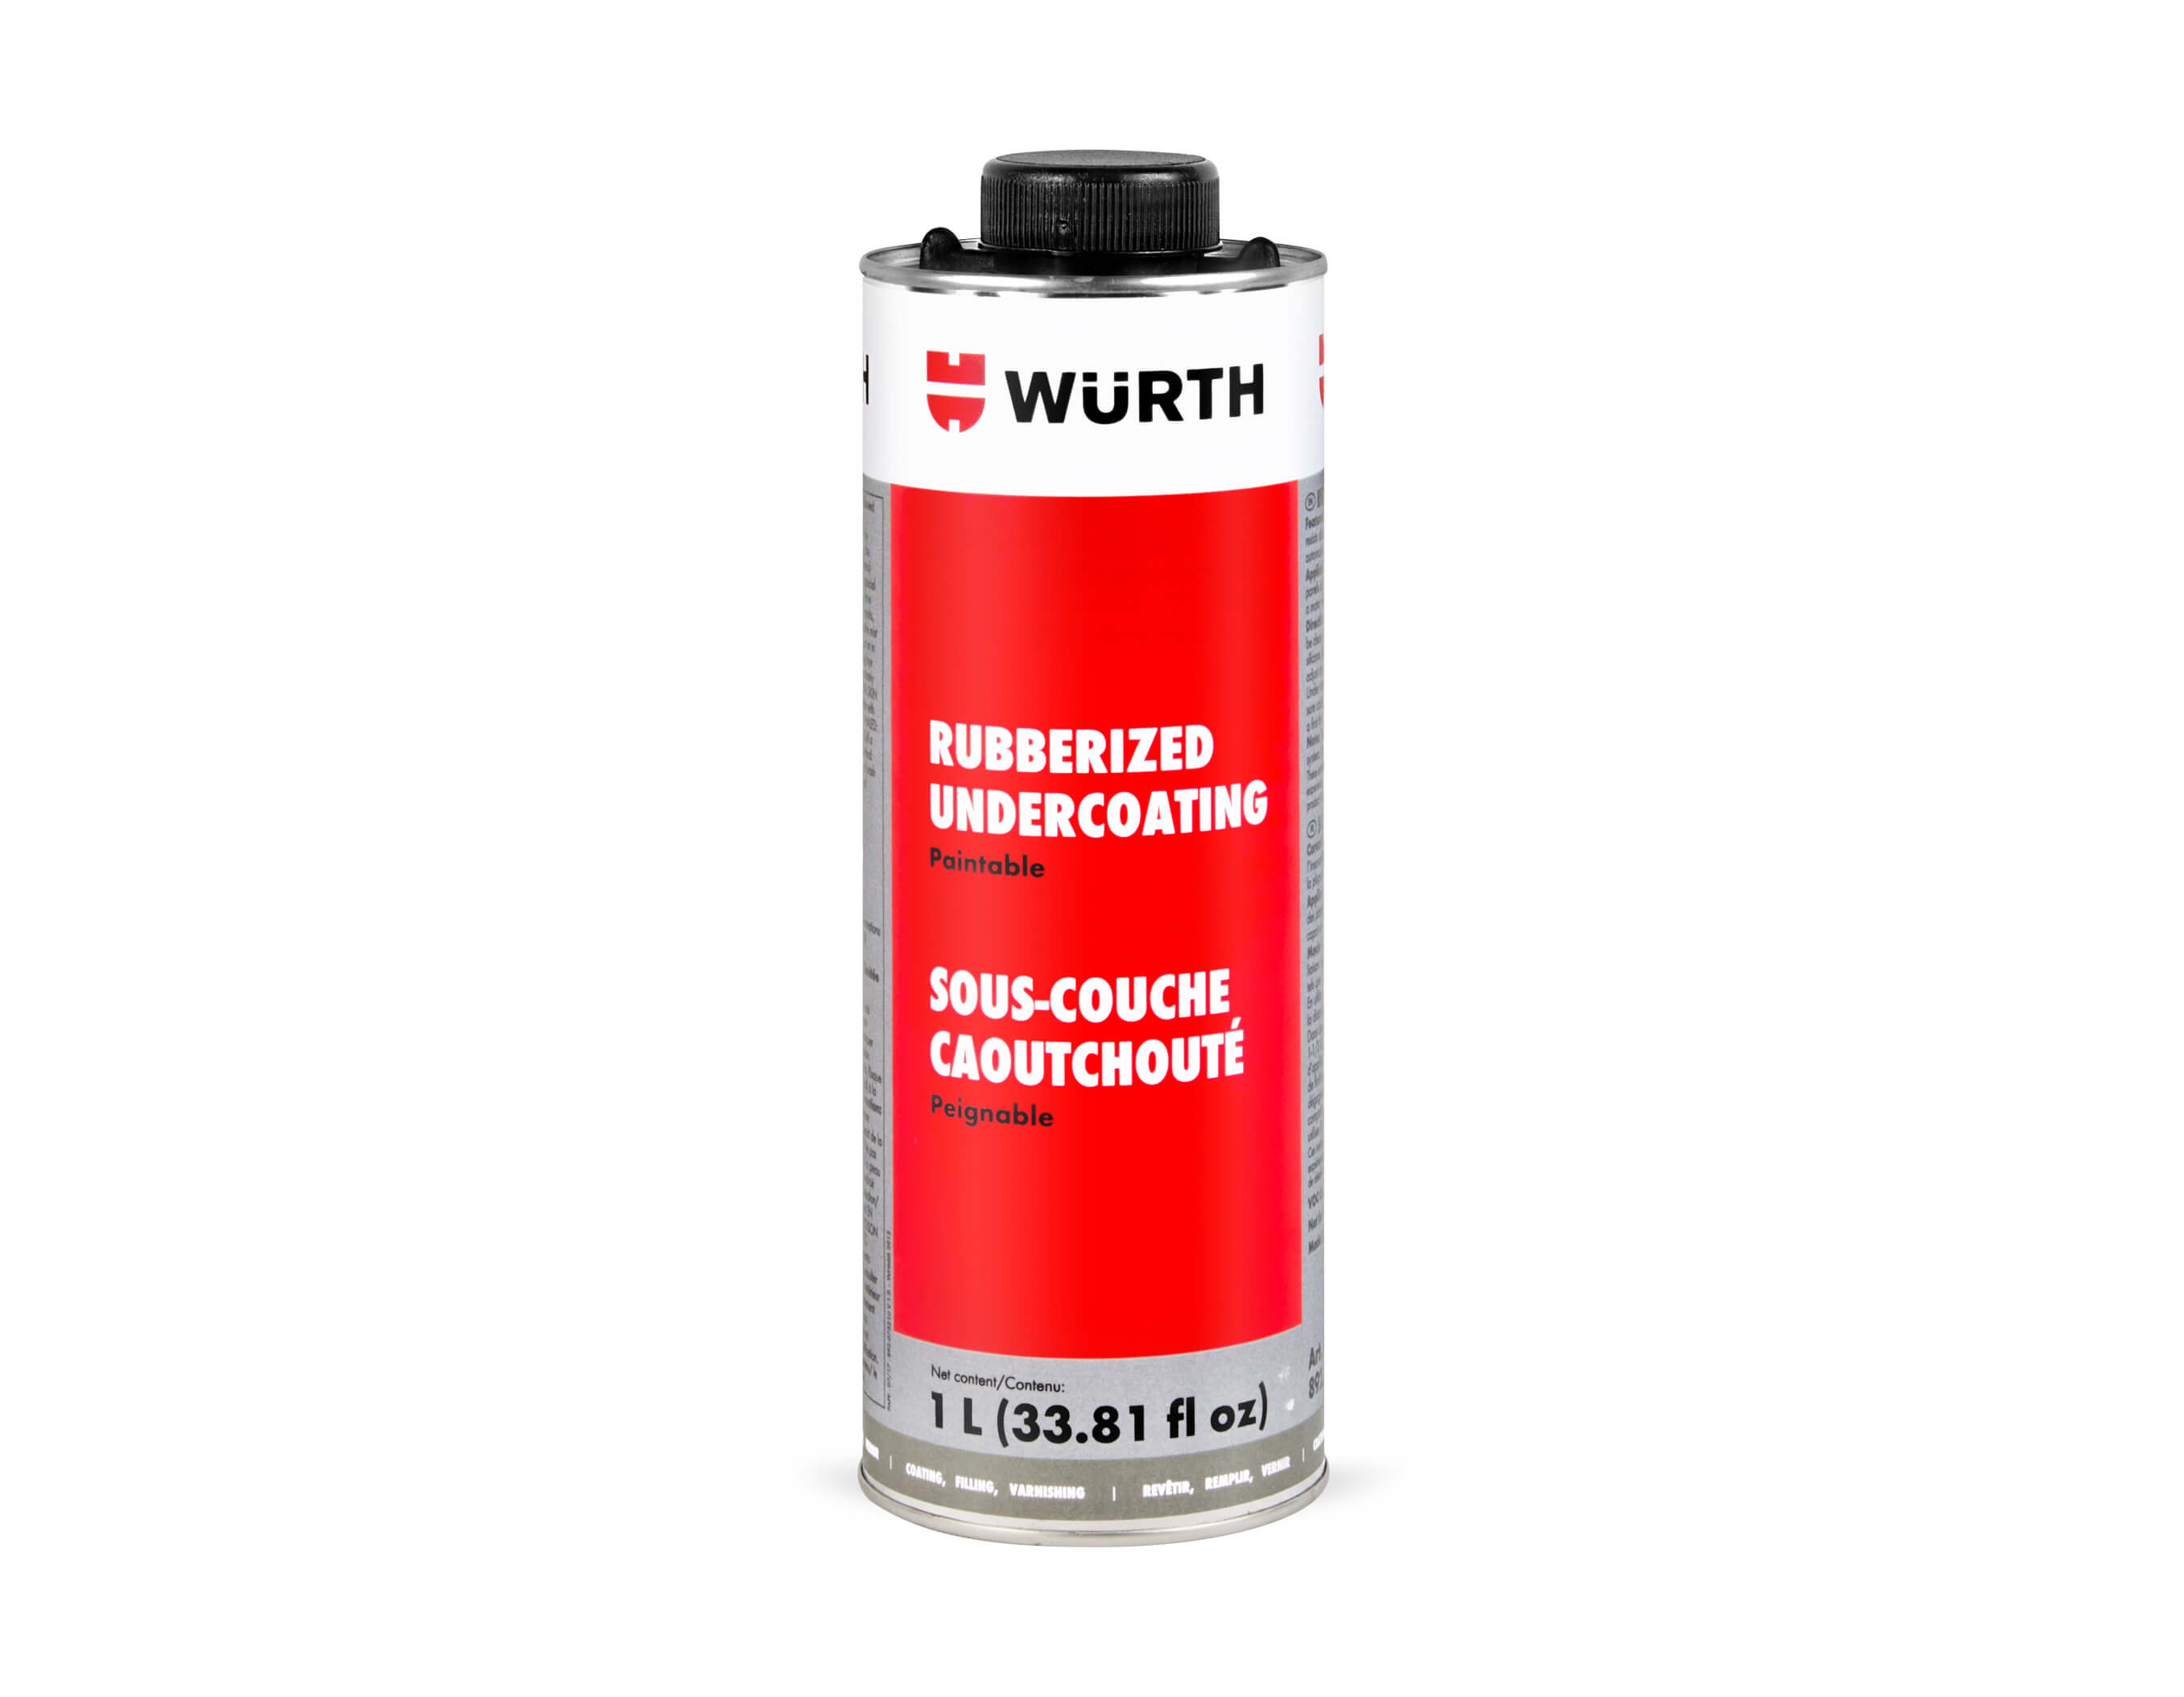 RUBBERIZED UNDERCOATING PAINTABLE 1L